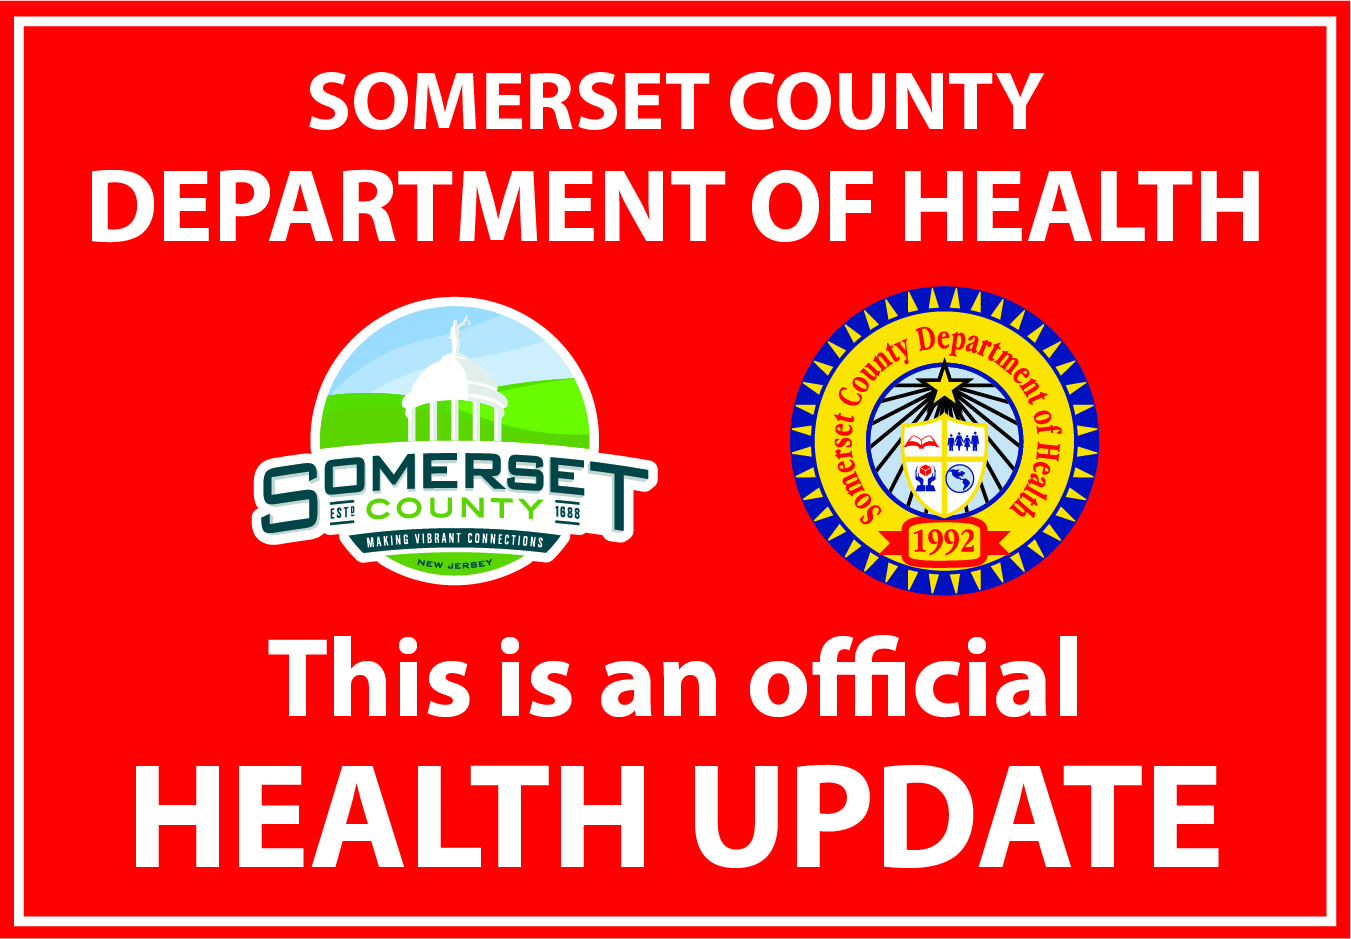 HealthAlertBadge - Somerset County